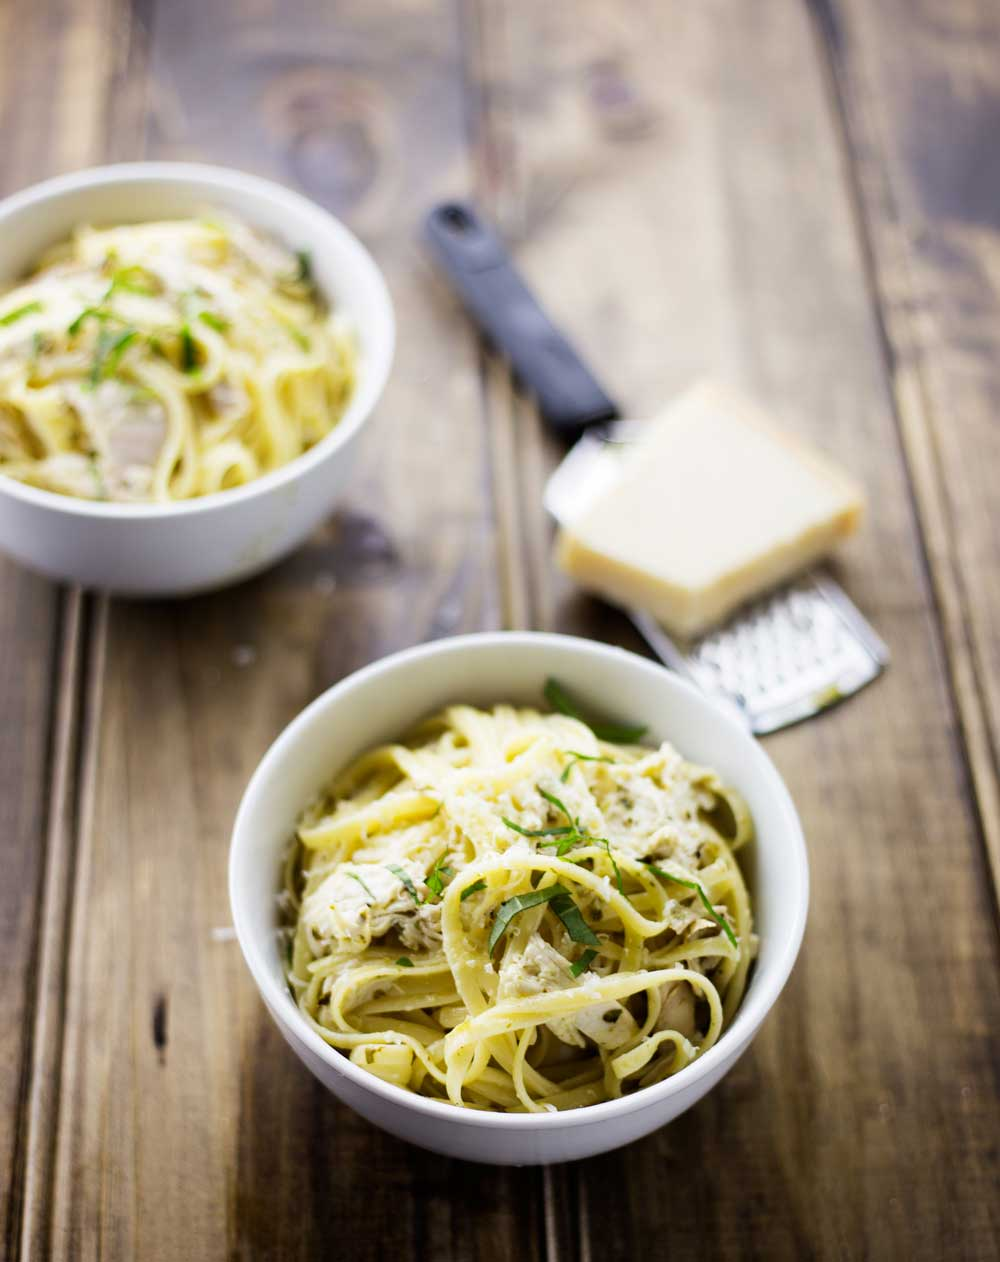 Lemon and Basil Chicken Pasta. Fresh and light, and the 'sauce' is almost instant. Simple and delicious, this dish has an beautiful elegance to it.